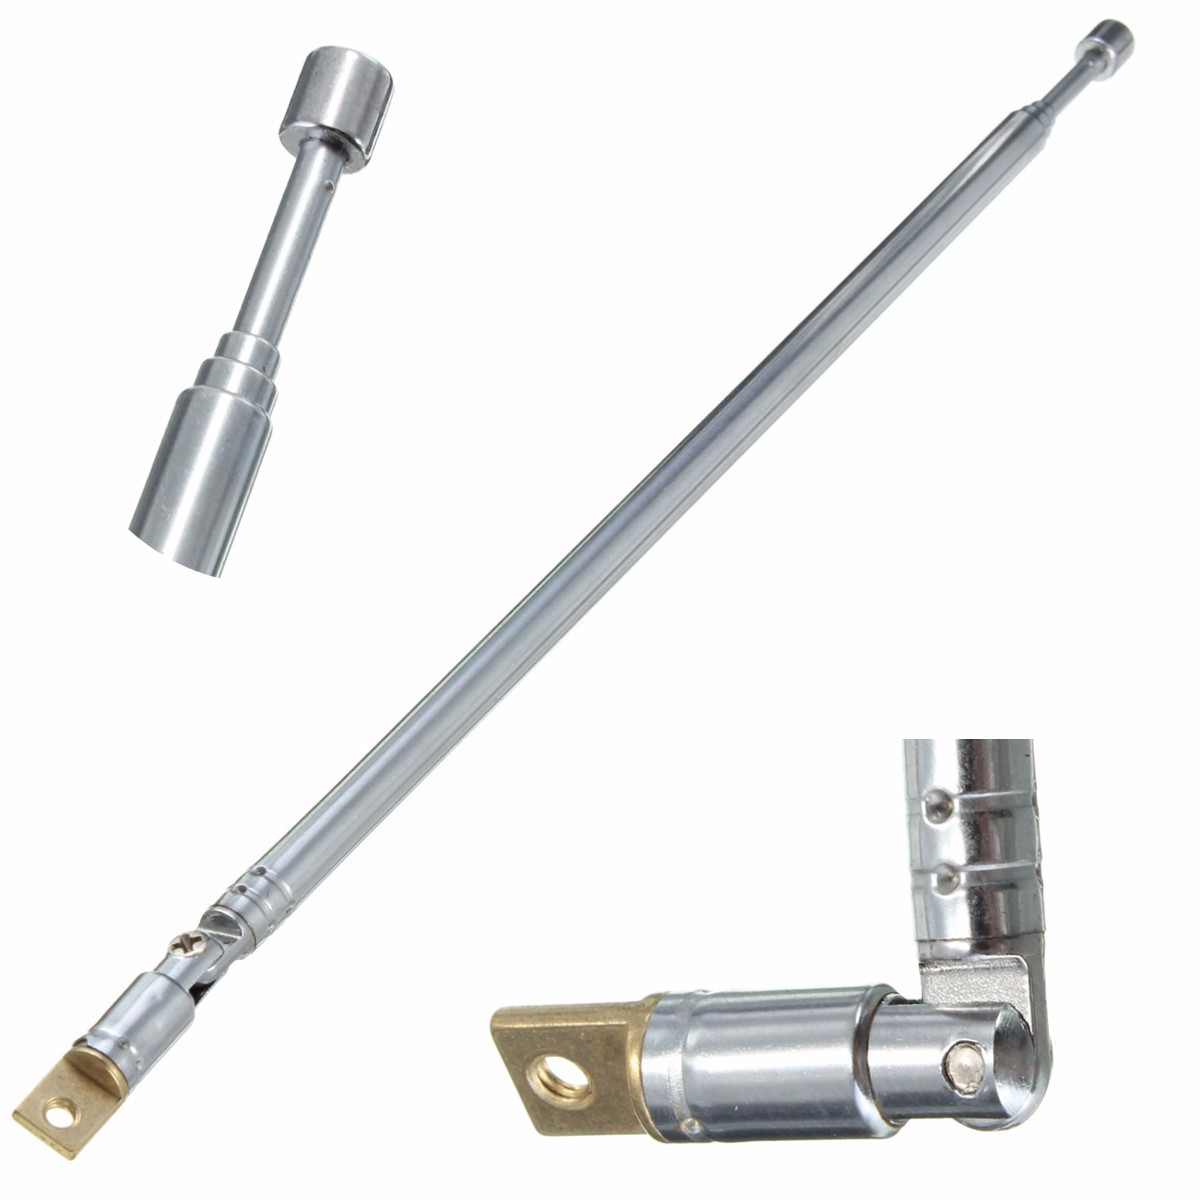 цена на New Arrival Best Promotion Durable 310991702355 AM FM Radio Telescopic Antenna Replacement 63cm Length 4 Sections